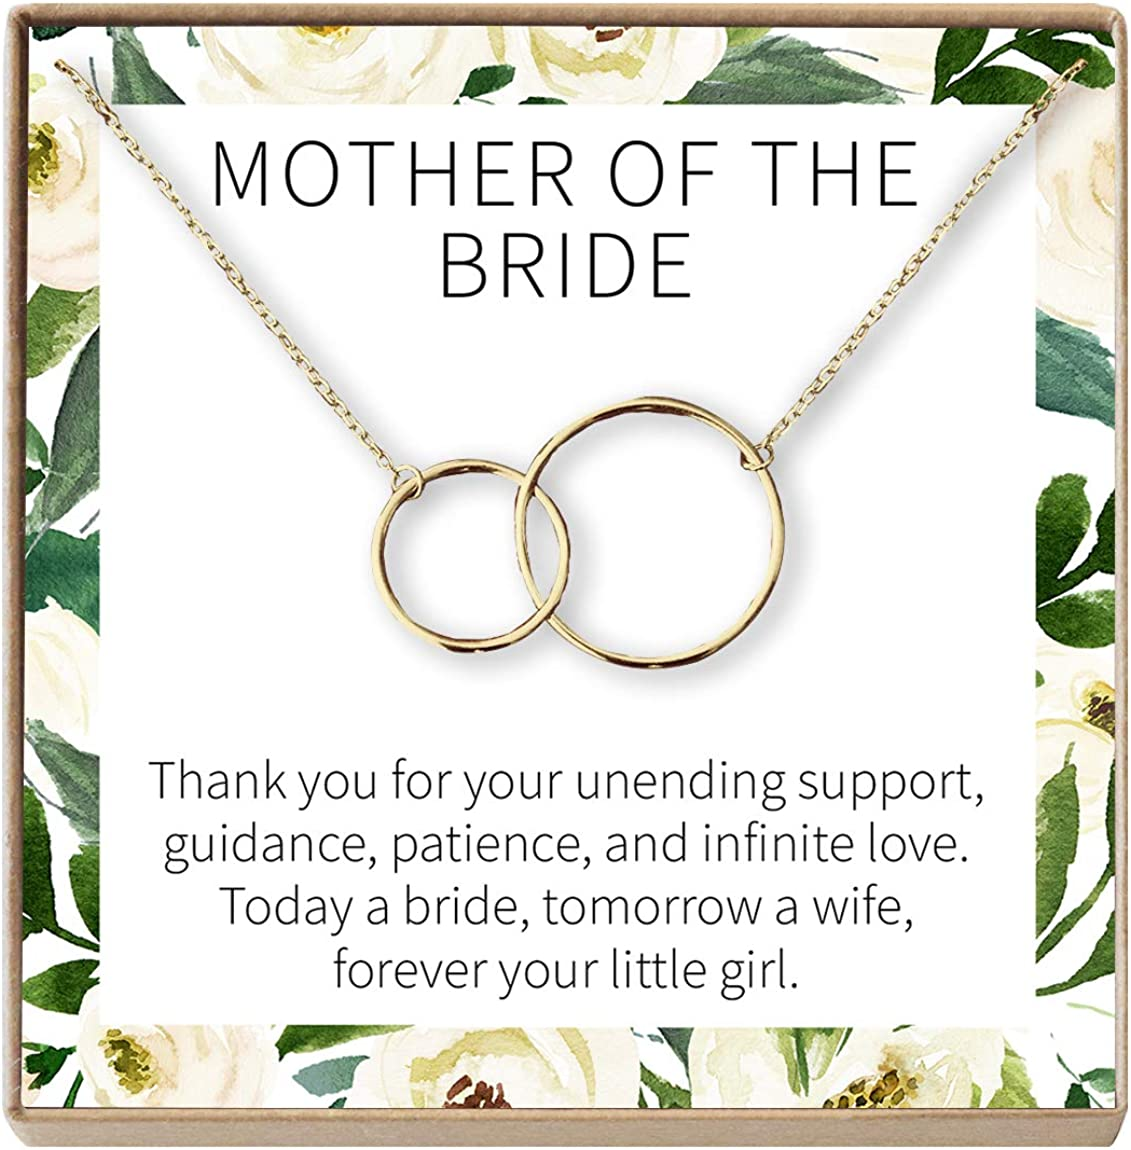 Amazon Com Dear Ava Mother Of The Bride Gift Necklace Parent Of Bride Jewelry 2 Interlocking Circles Gold Plated Brass Na Jewelry